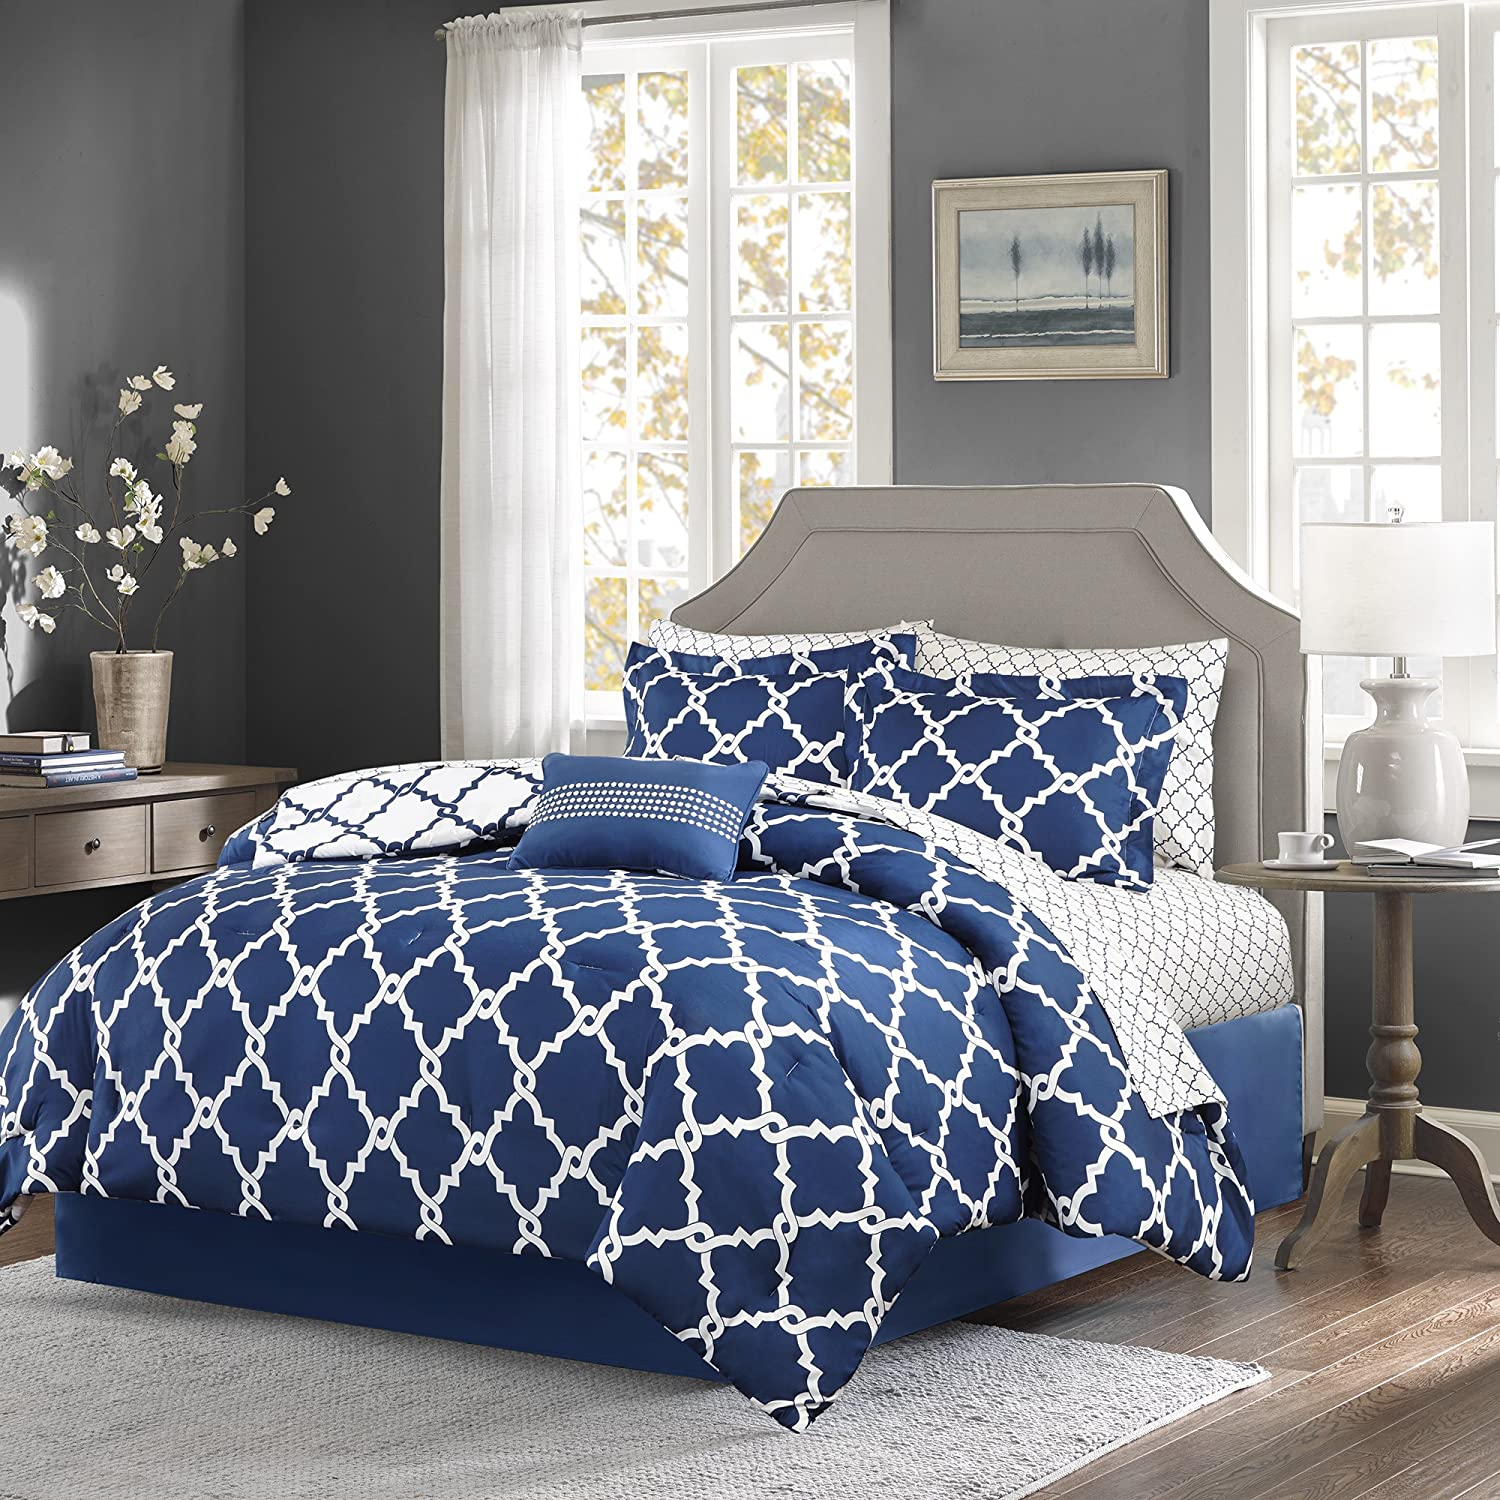 covers park co piece set quinn madison orissa comforter full beyond bedding and nantucket queen of hampton lola complete bath kendall classics size duvet sheet by essentials bed